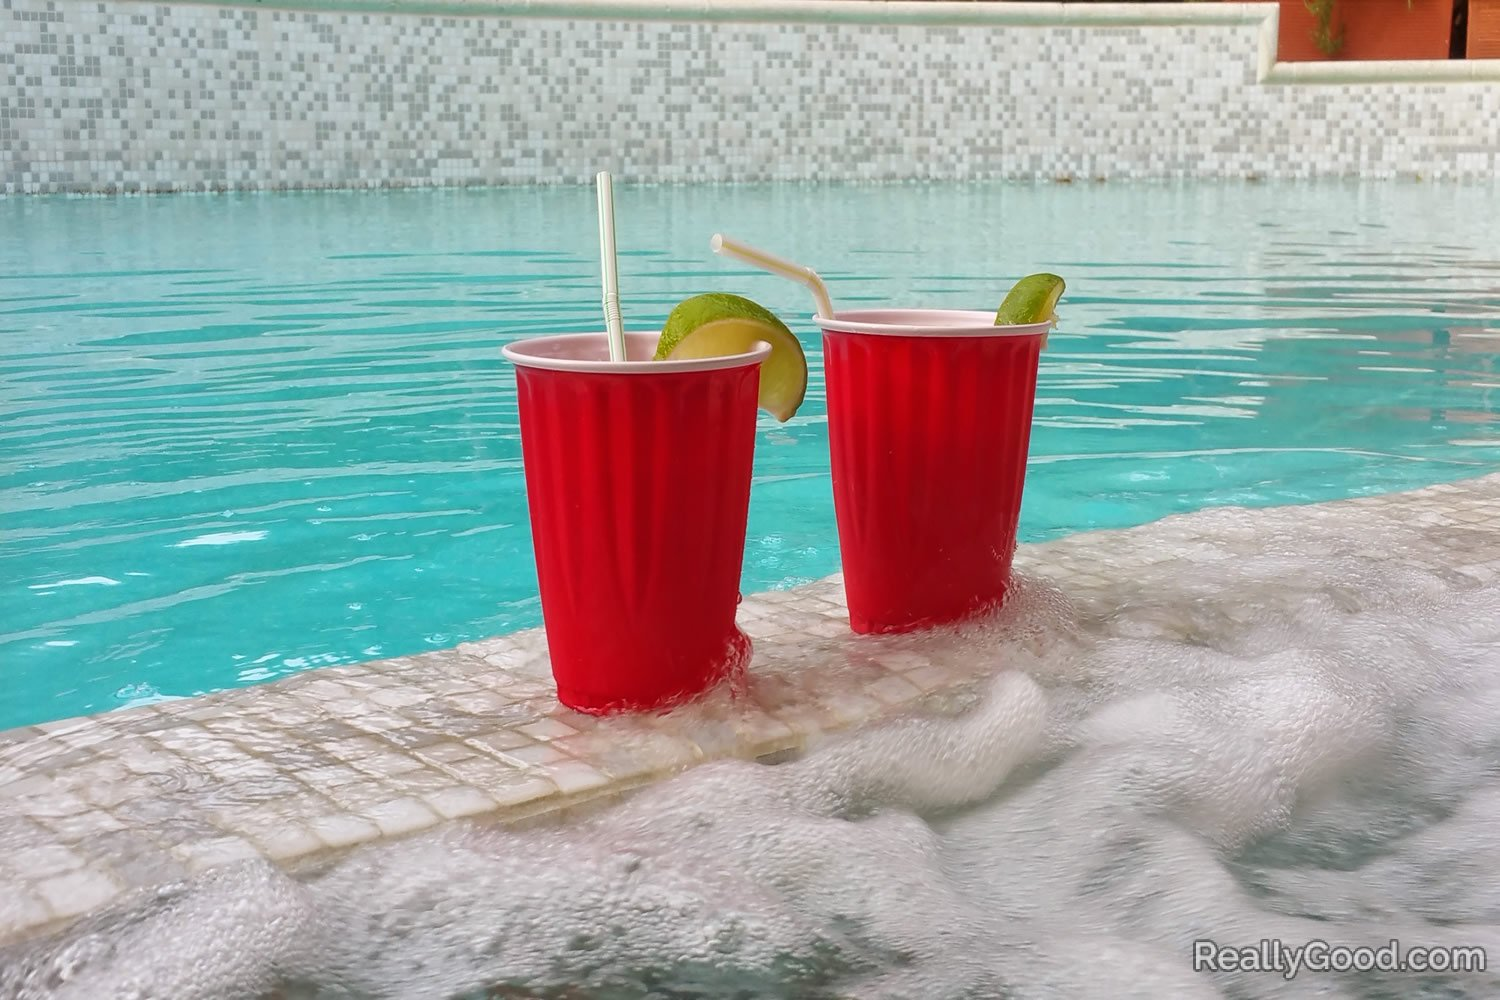 Cocktails in the hot tub